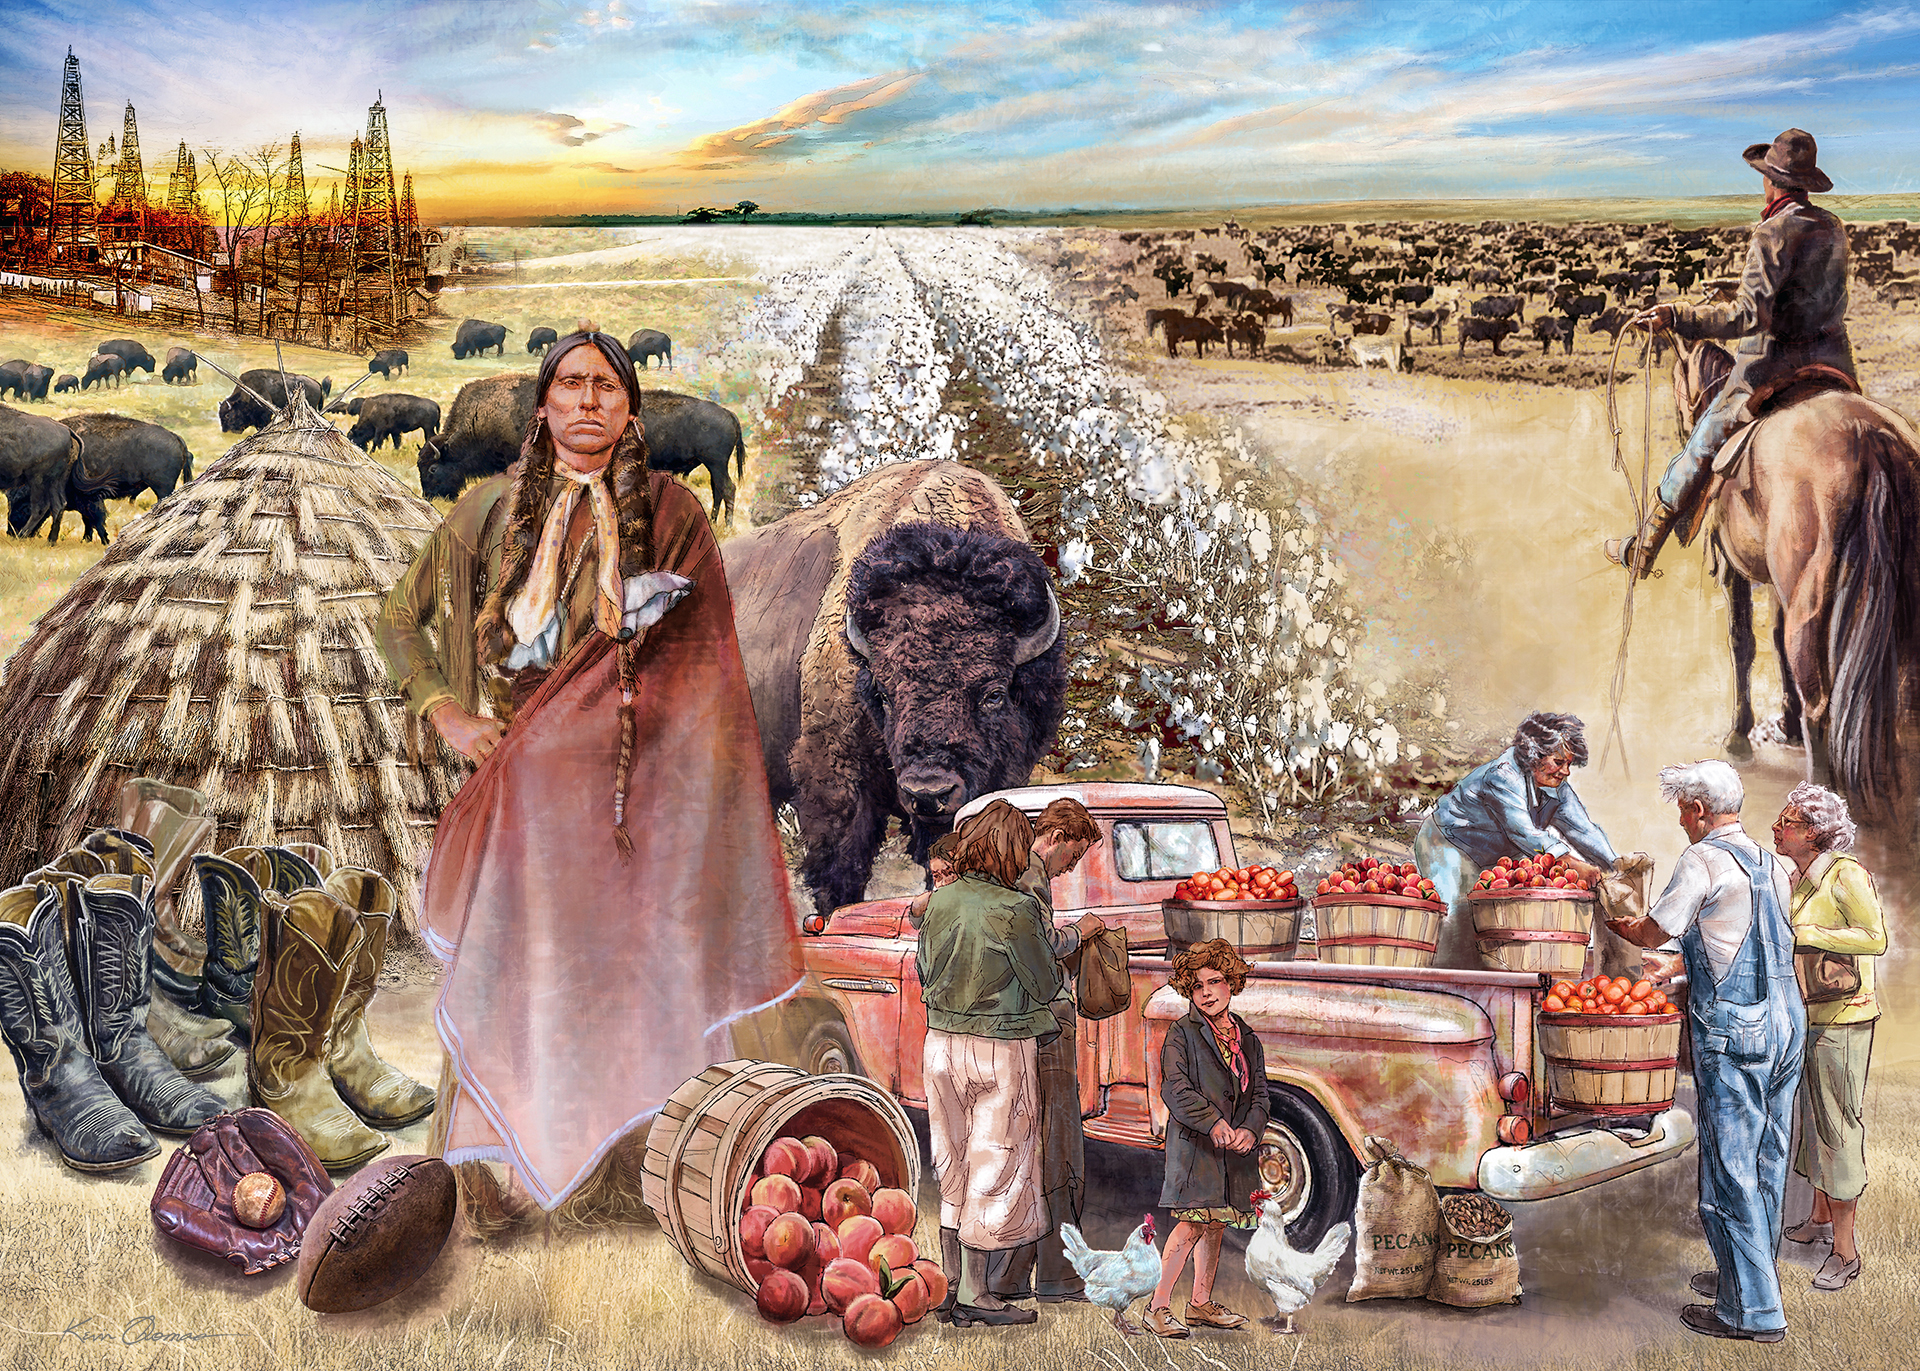 """Tales N' Trails Mural"" • mural painted within Photoshop utilizing traditional painting techniques • Tales N' Trails Museum, Nocona, TX. © KT"